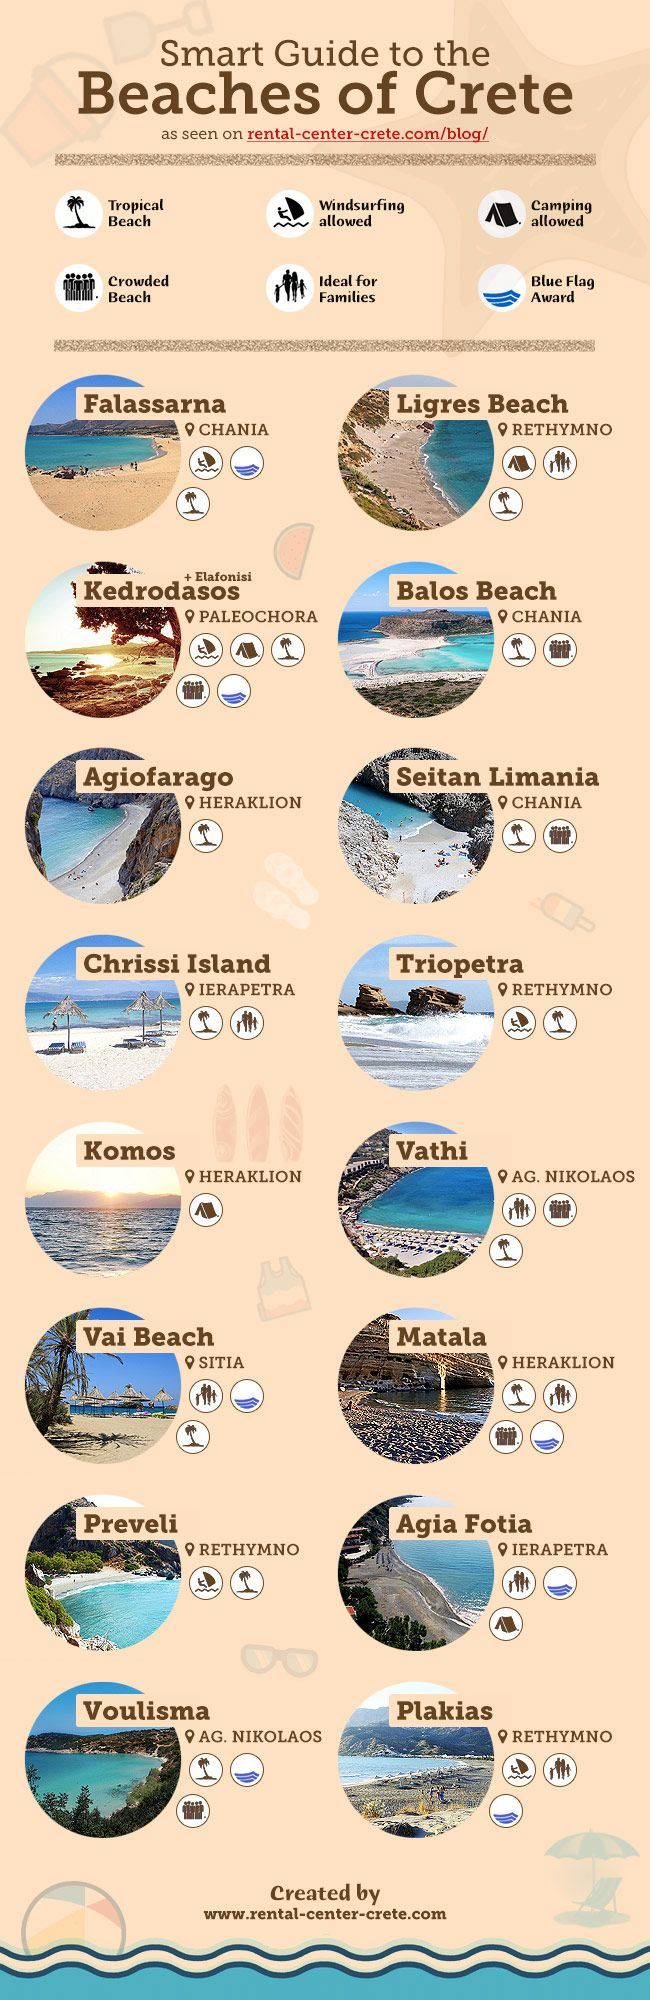 Smart Guide to the Beaches of ‪#‎Crete‬  ▶ http://www.rental-center-crete.com/blog/smart-guide-beaches-crete/